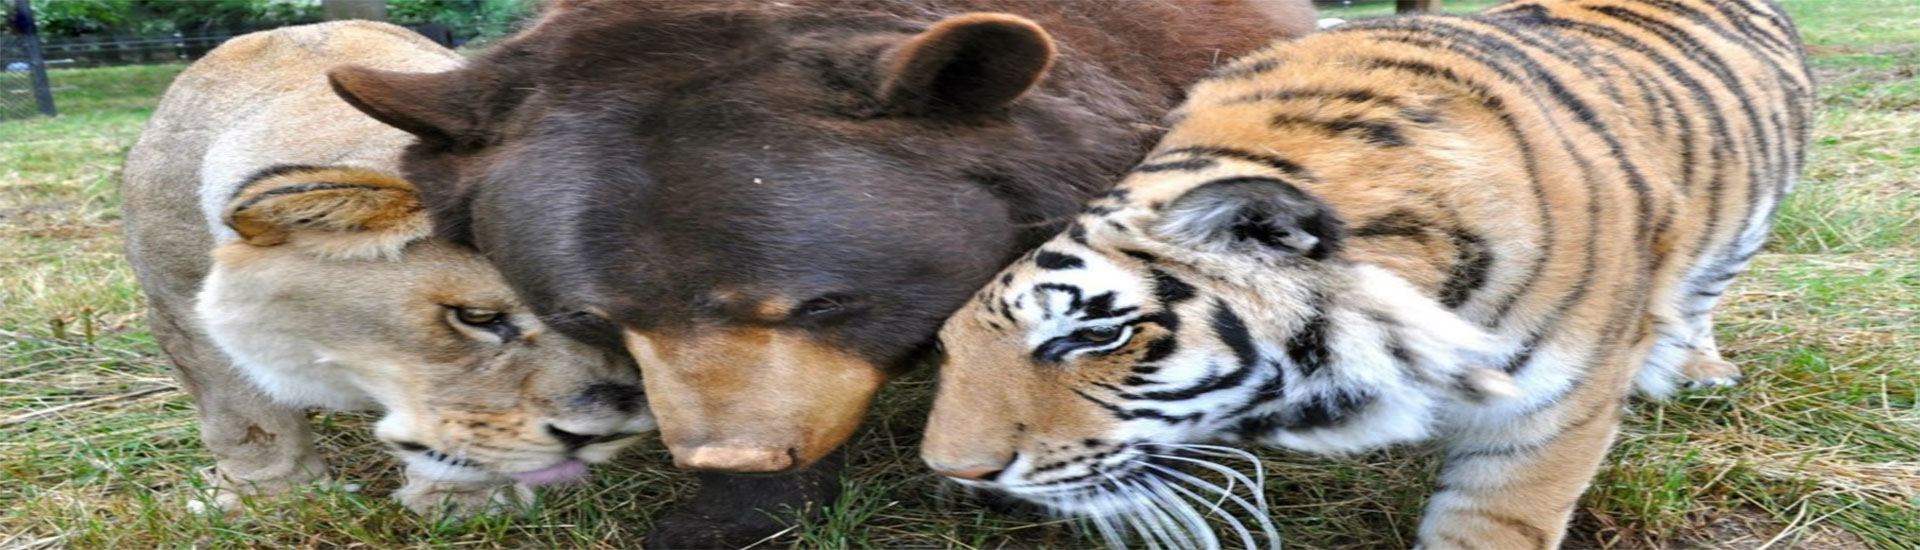 A Lion Bear And Tiger Are The Best Of Friends The Paw Report - Lion tiger bear best friends